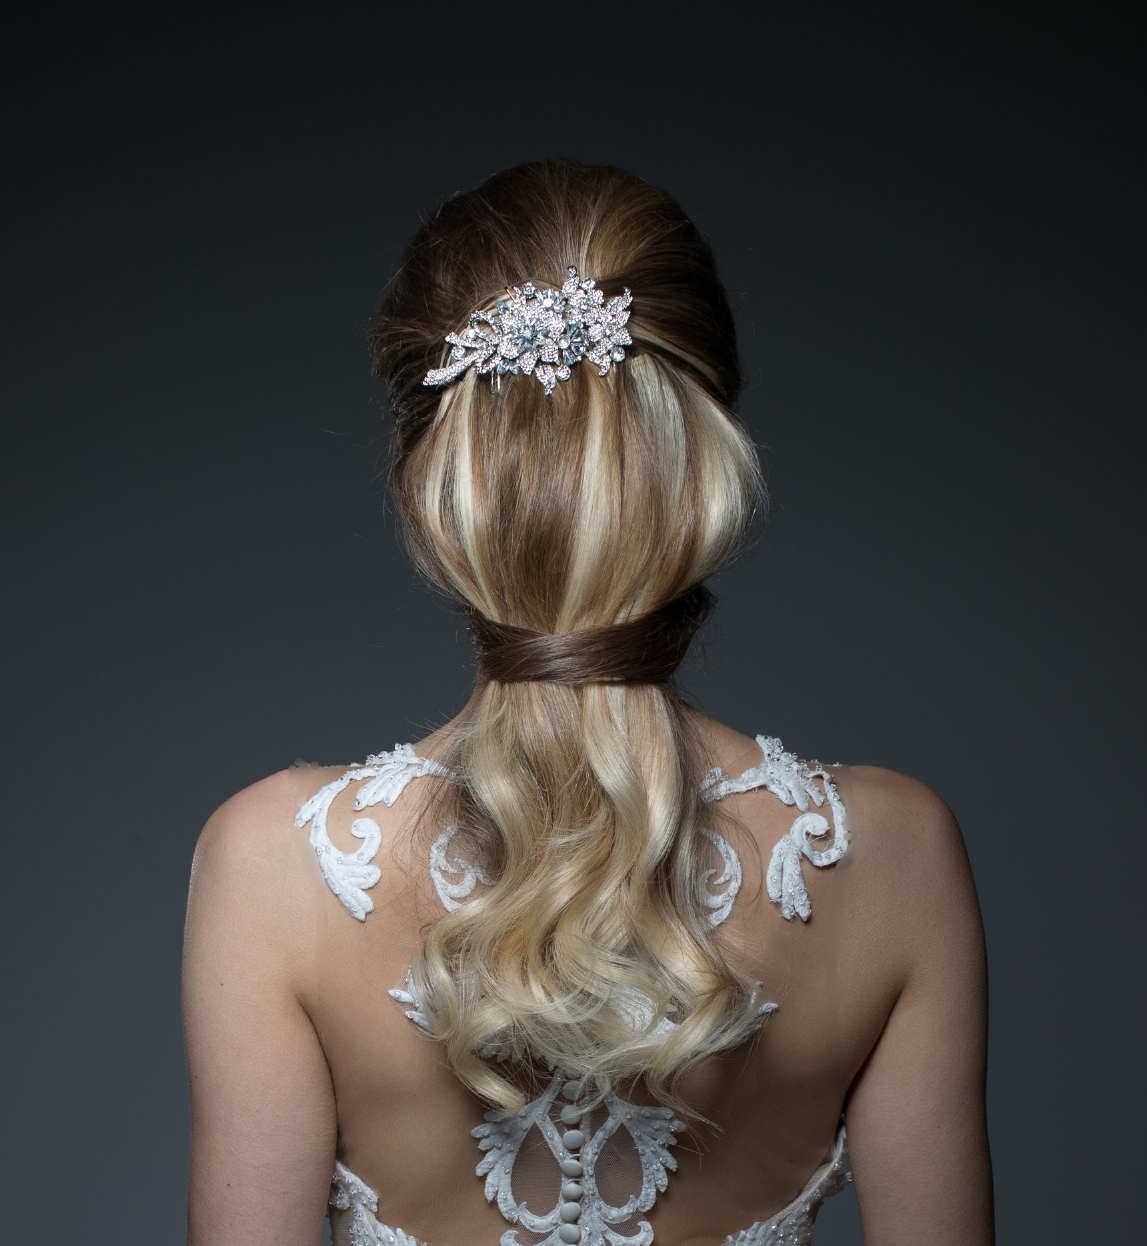 bredice_beauty_hair_nyc_luxury_bride_AA3I6933.jpg